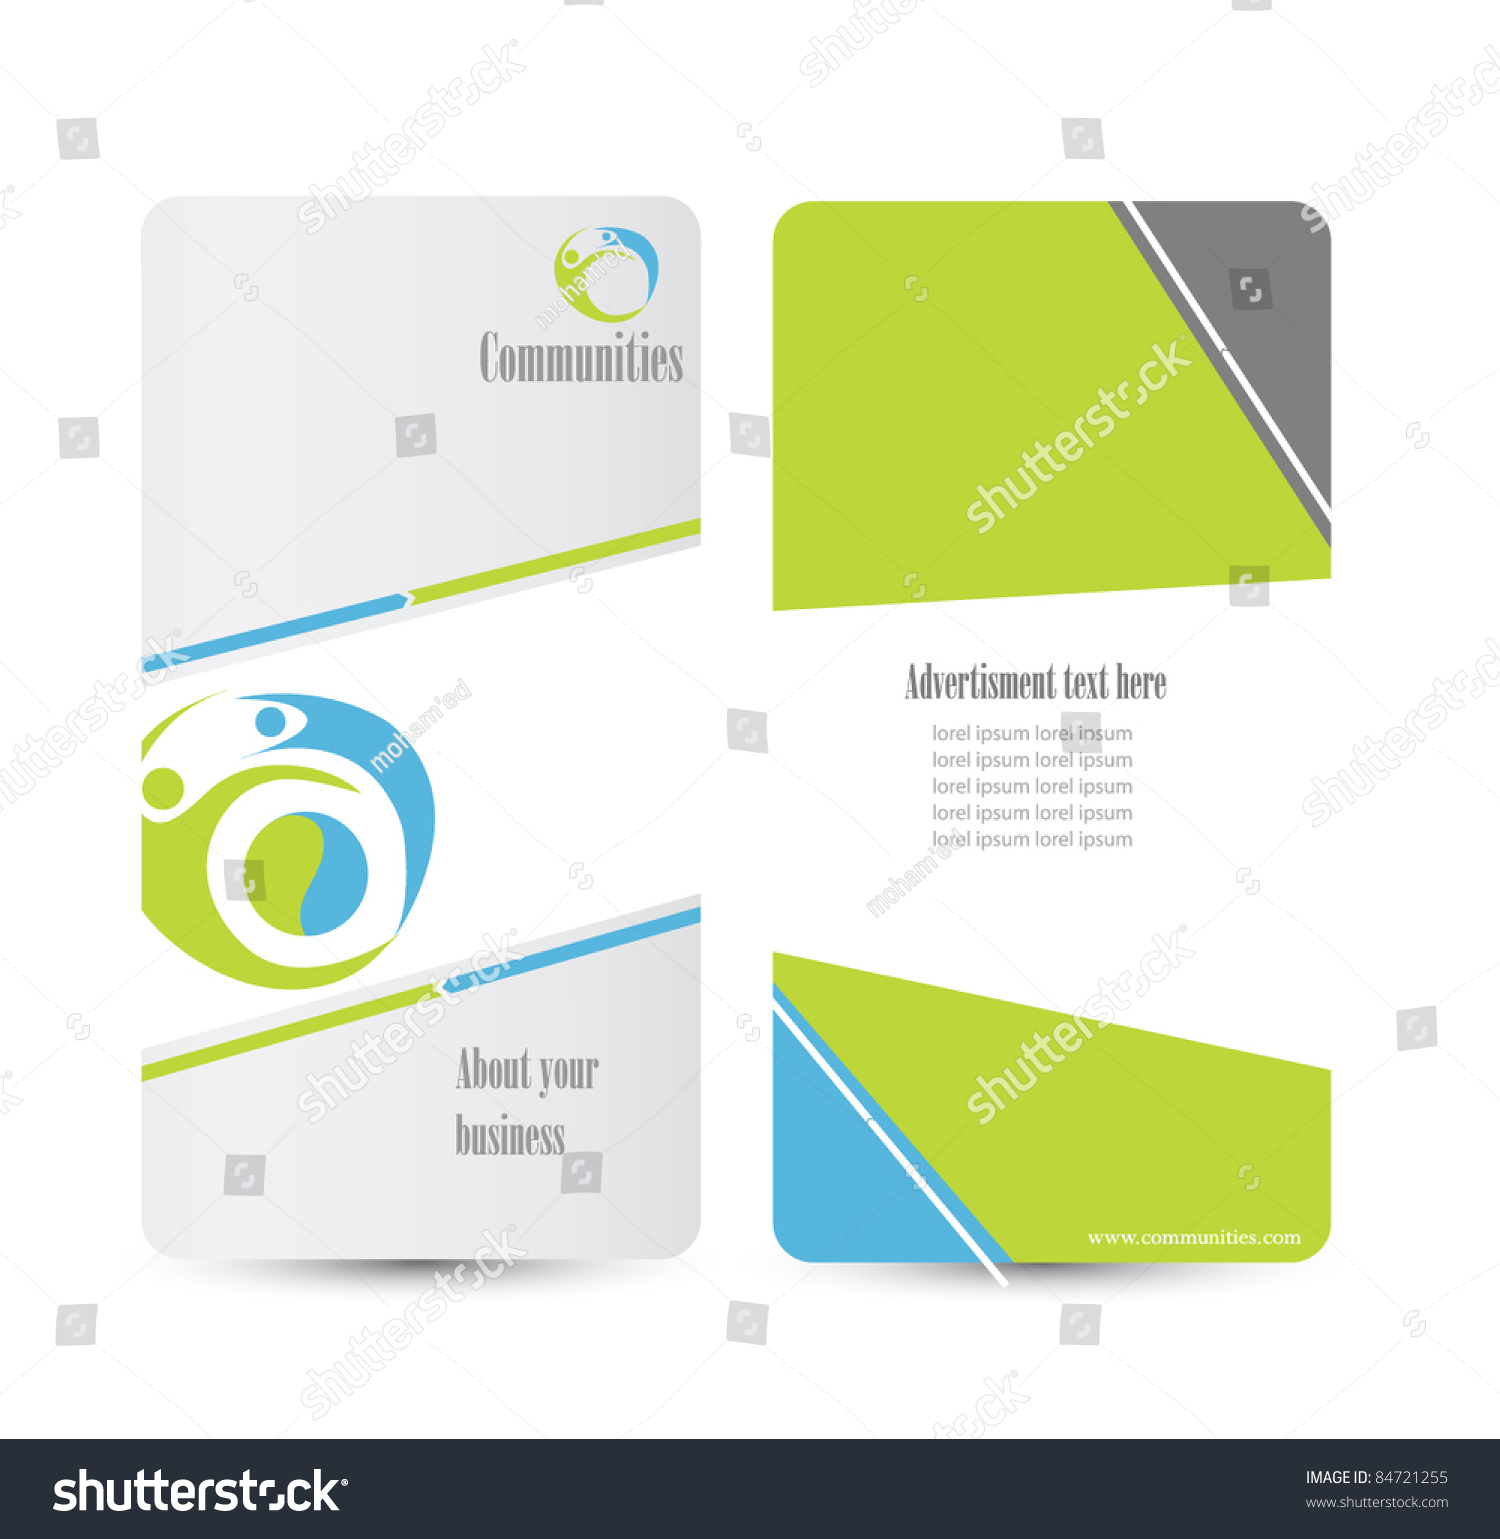 classy brochure design - elegant business brochure design stock vector illustration